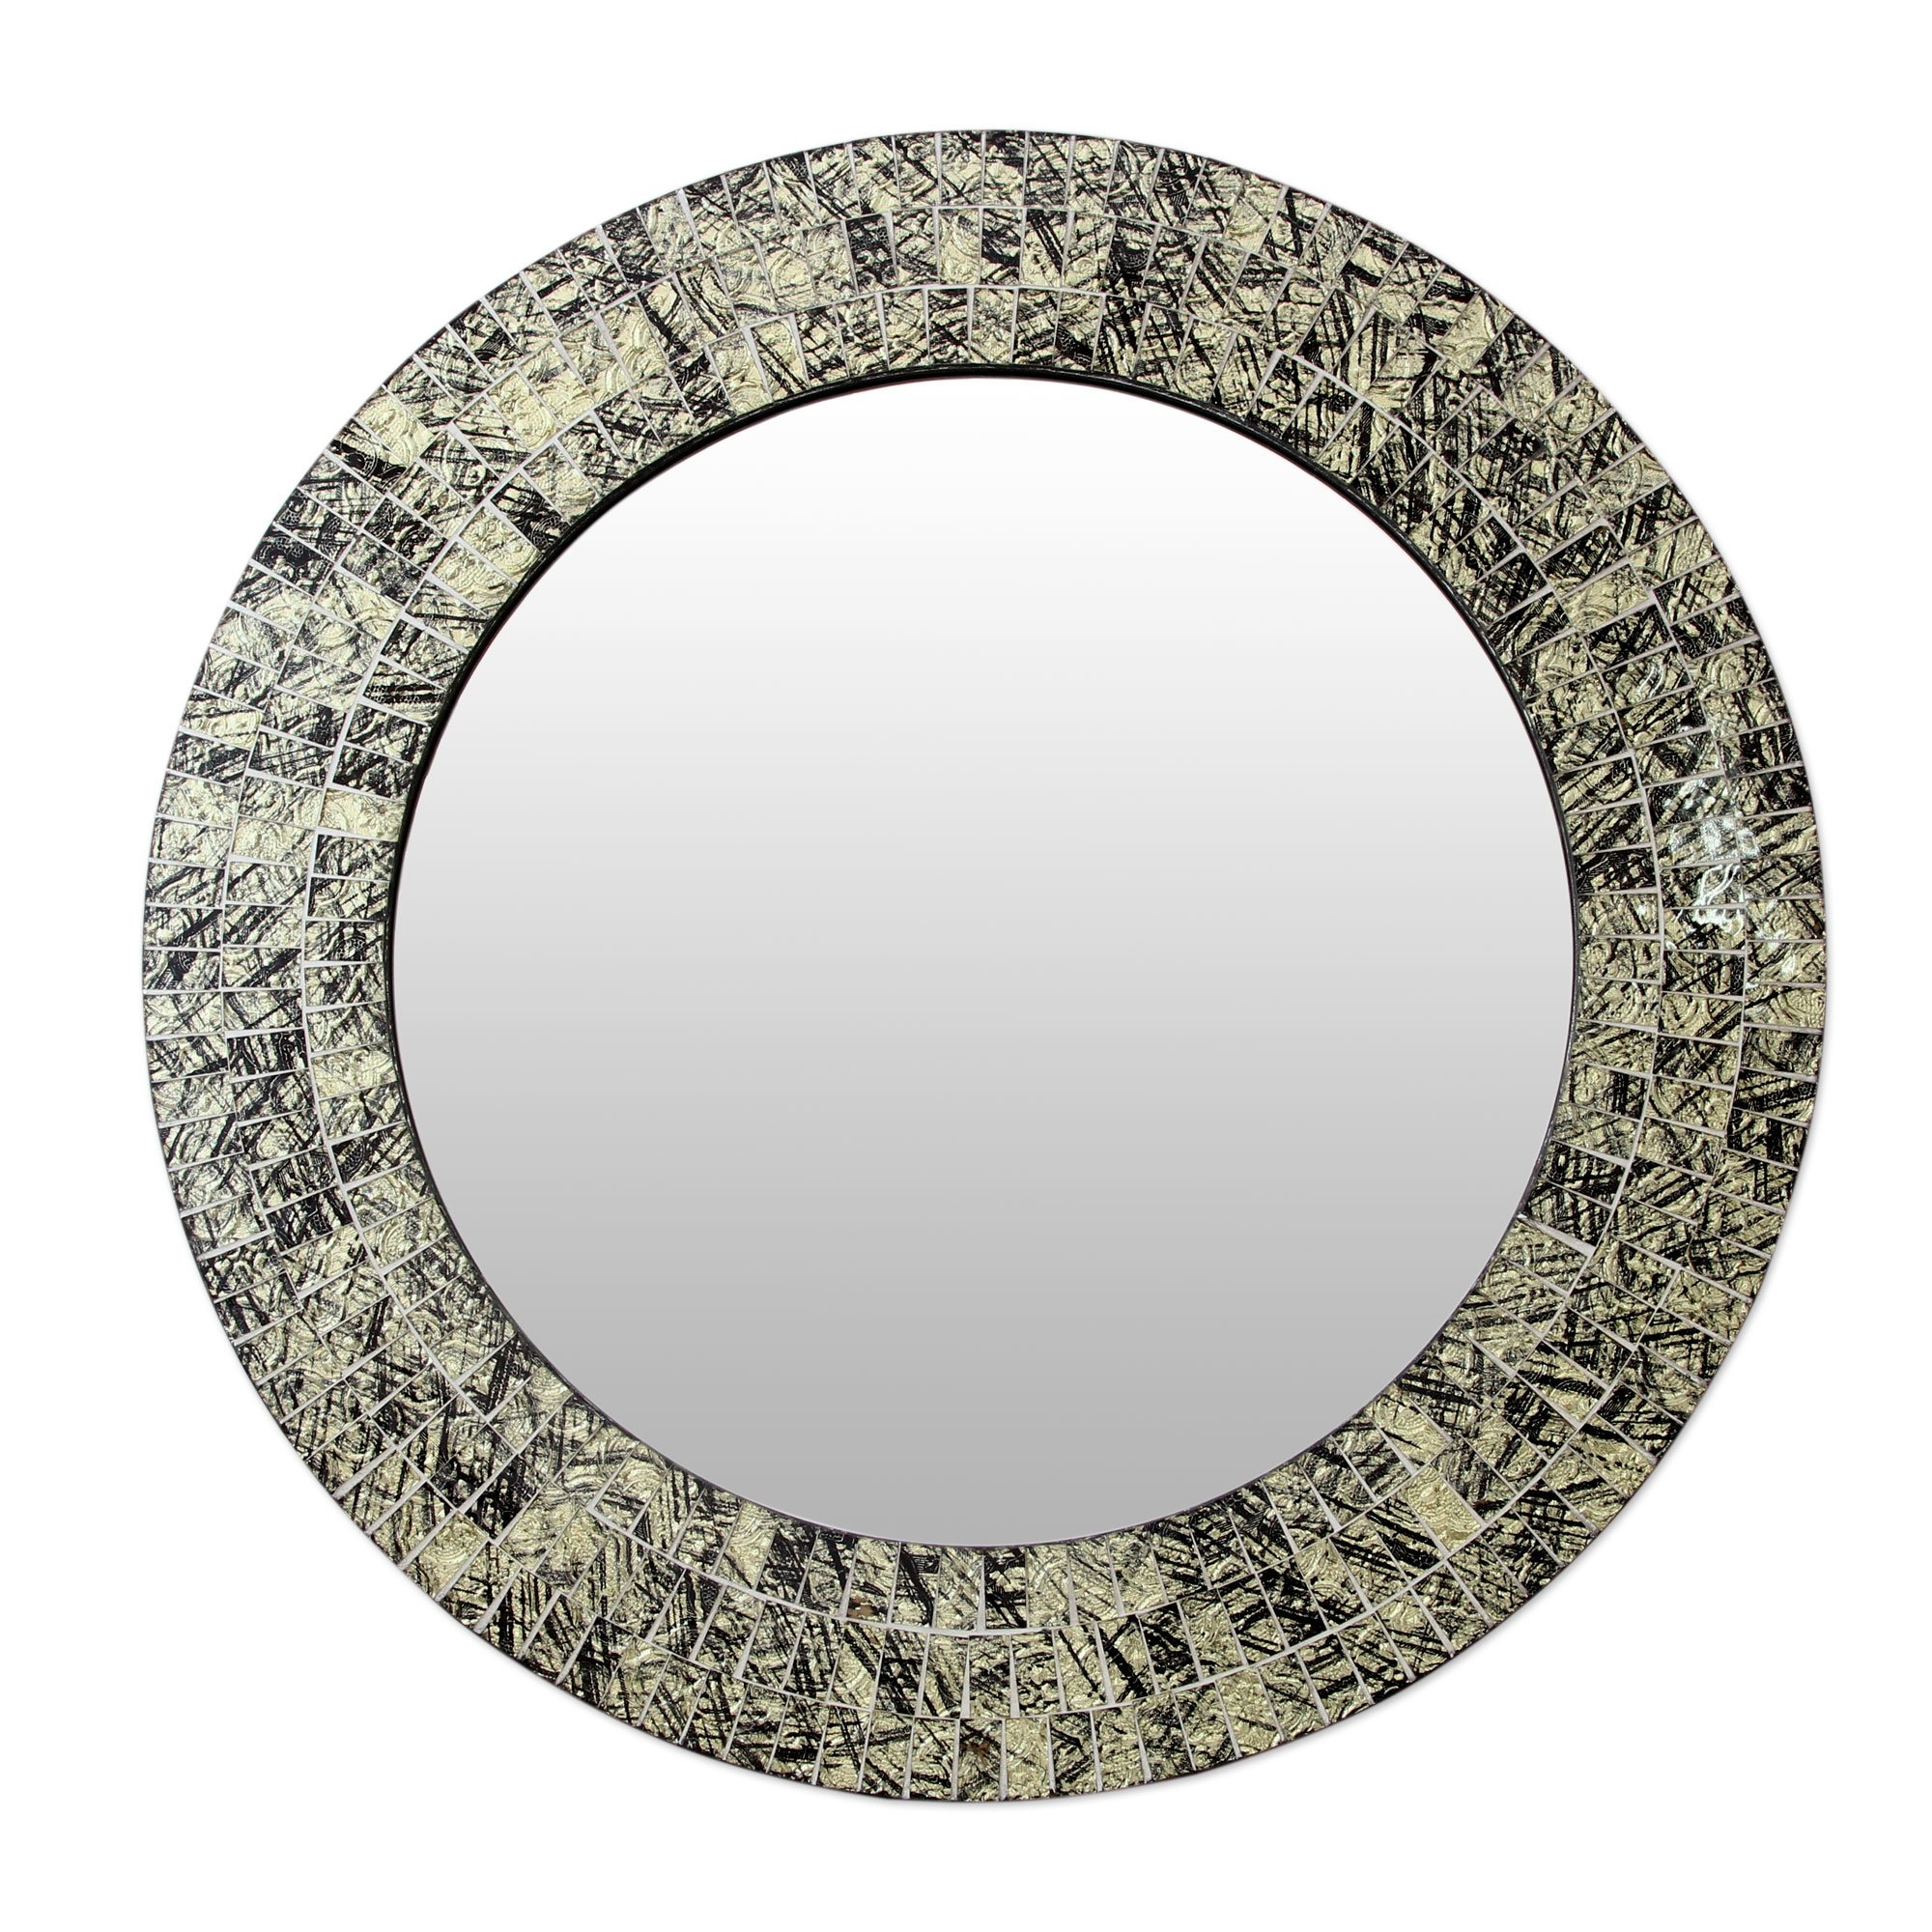 Novica Golden Moon Glass Mosaic Round Wall Mirror Wayfair Inside Round Mosaic Wall Mirror (View 10 of 15)